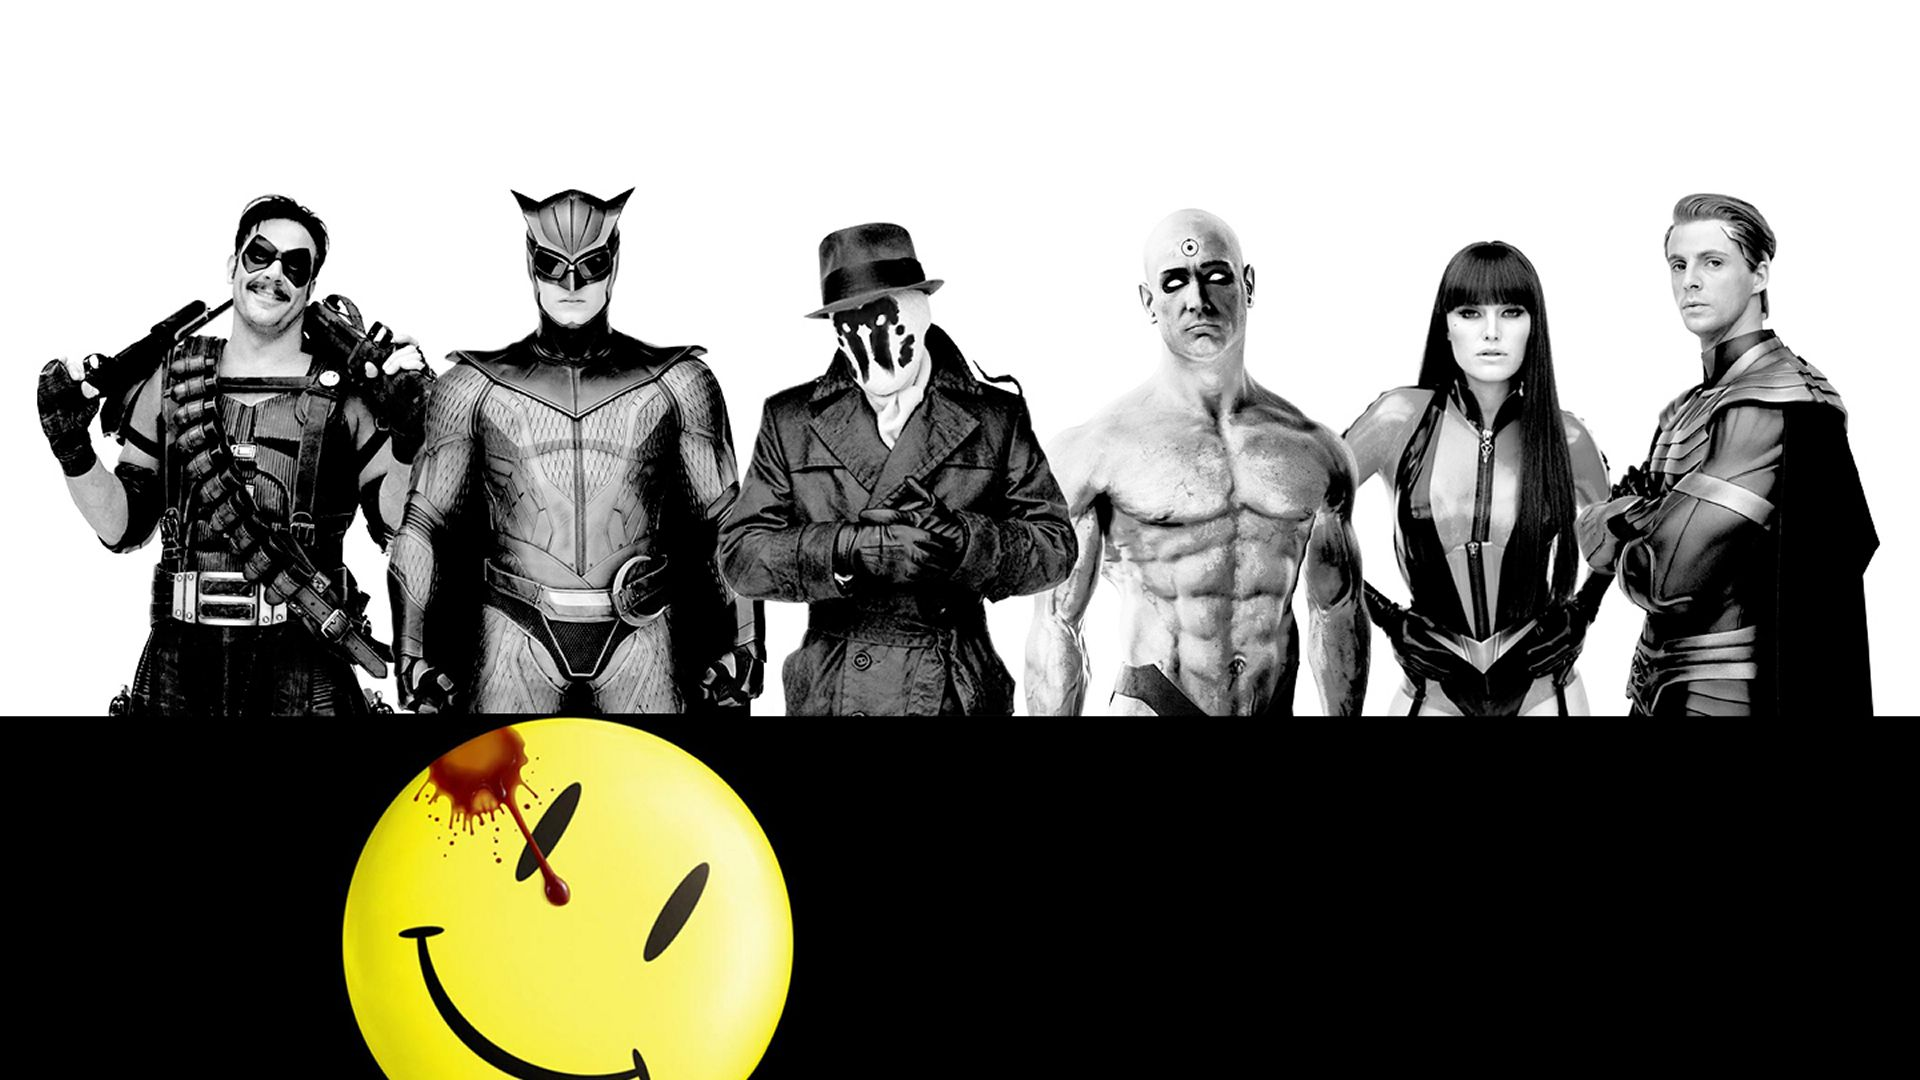 Superhero Movies images Watchmen HD wallpaper and background